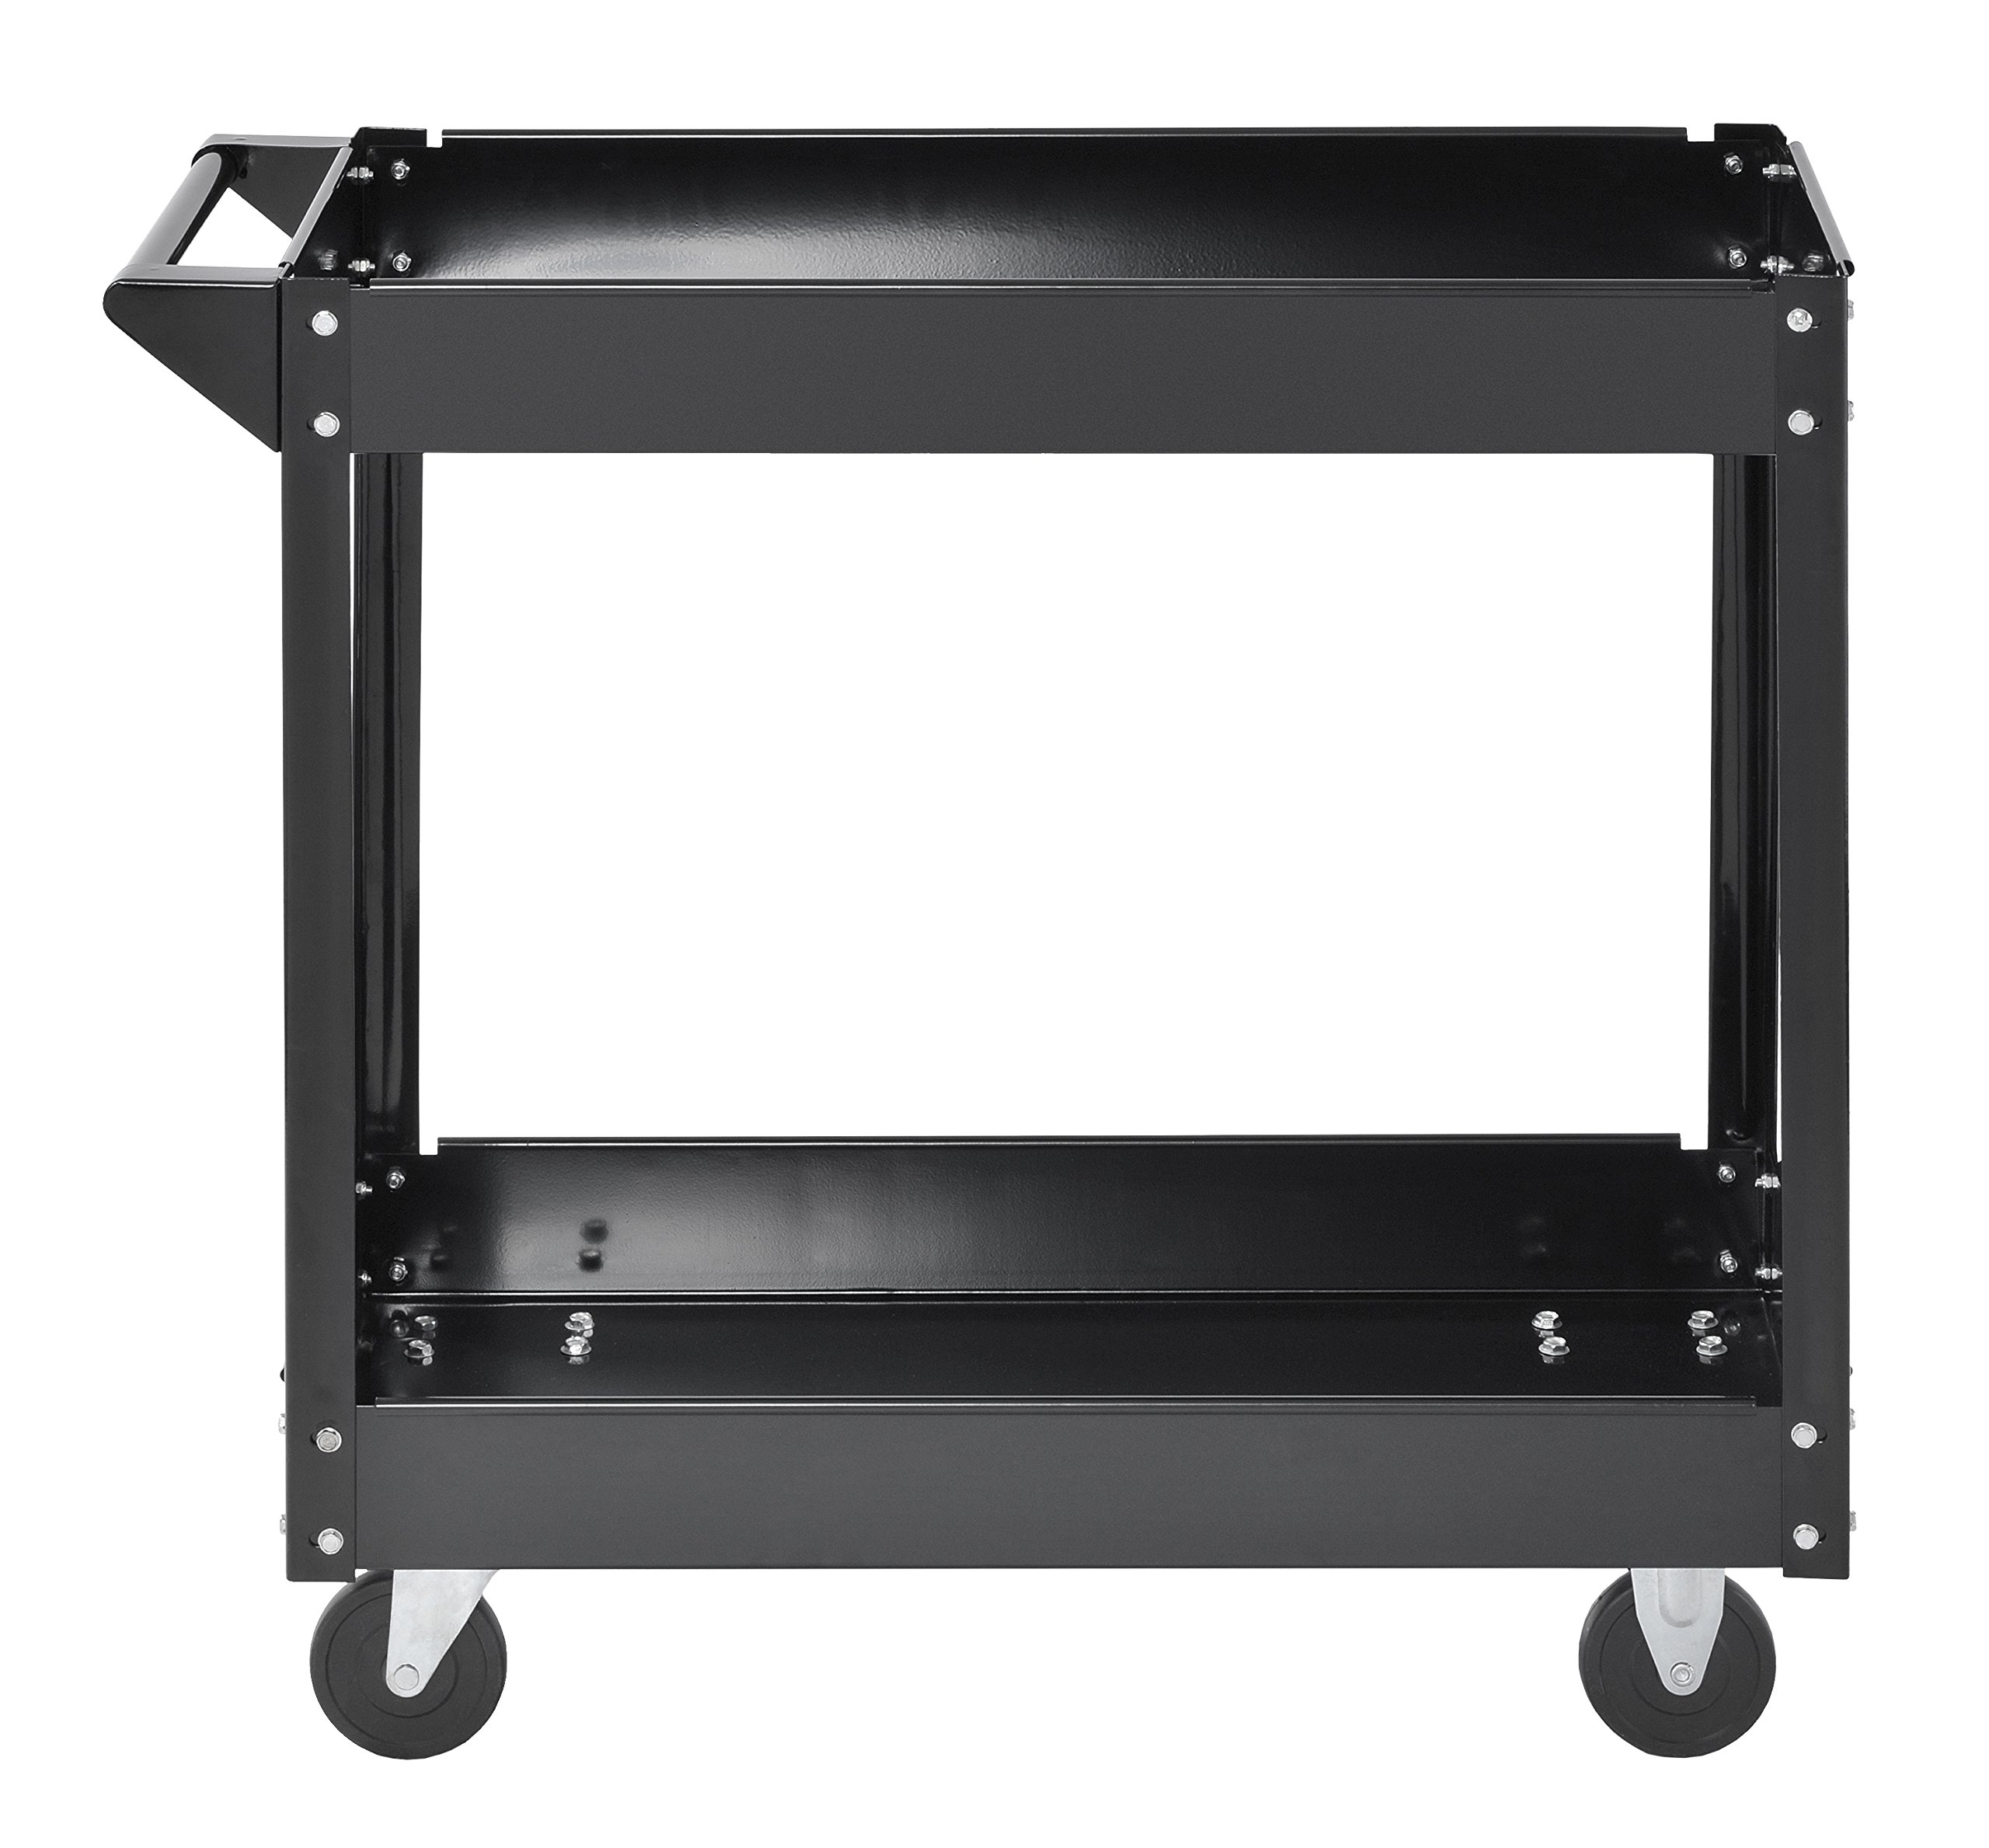 Muscle Rack SC3016 Industrial Black Commercial Service Cart, Steel, 220Lbs Capacity, 33'' Width x 30.5'' Height x 16'' Depth, 2 Shelves, 30.5'' Height, 33'' Width, 16'' Length by Muscle Rack (Image #7)